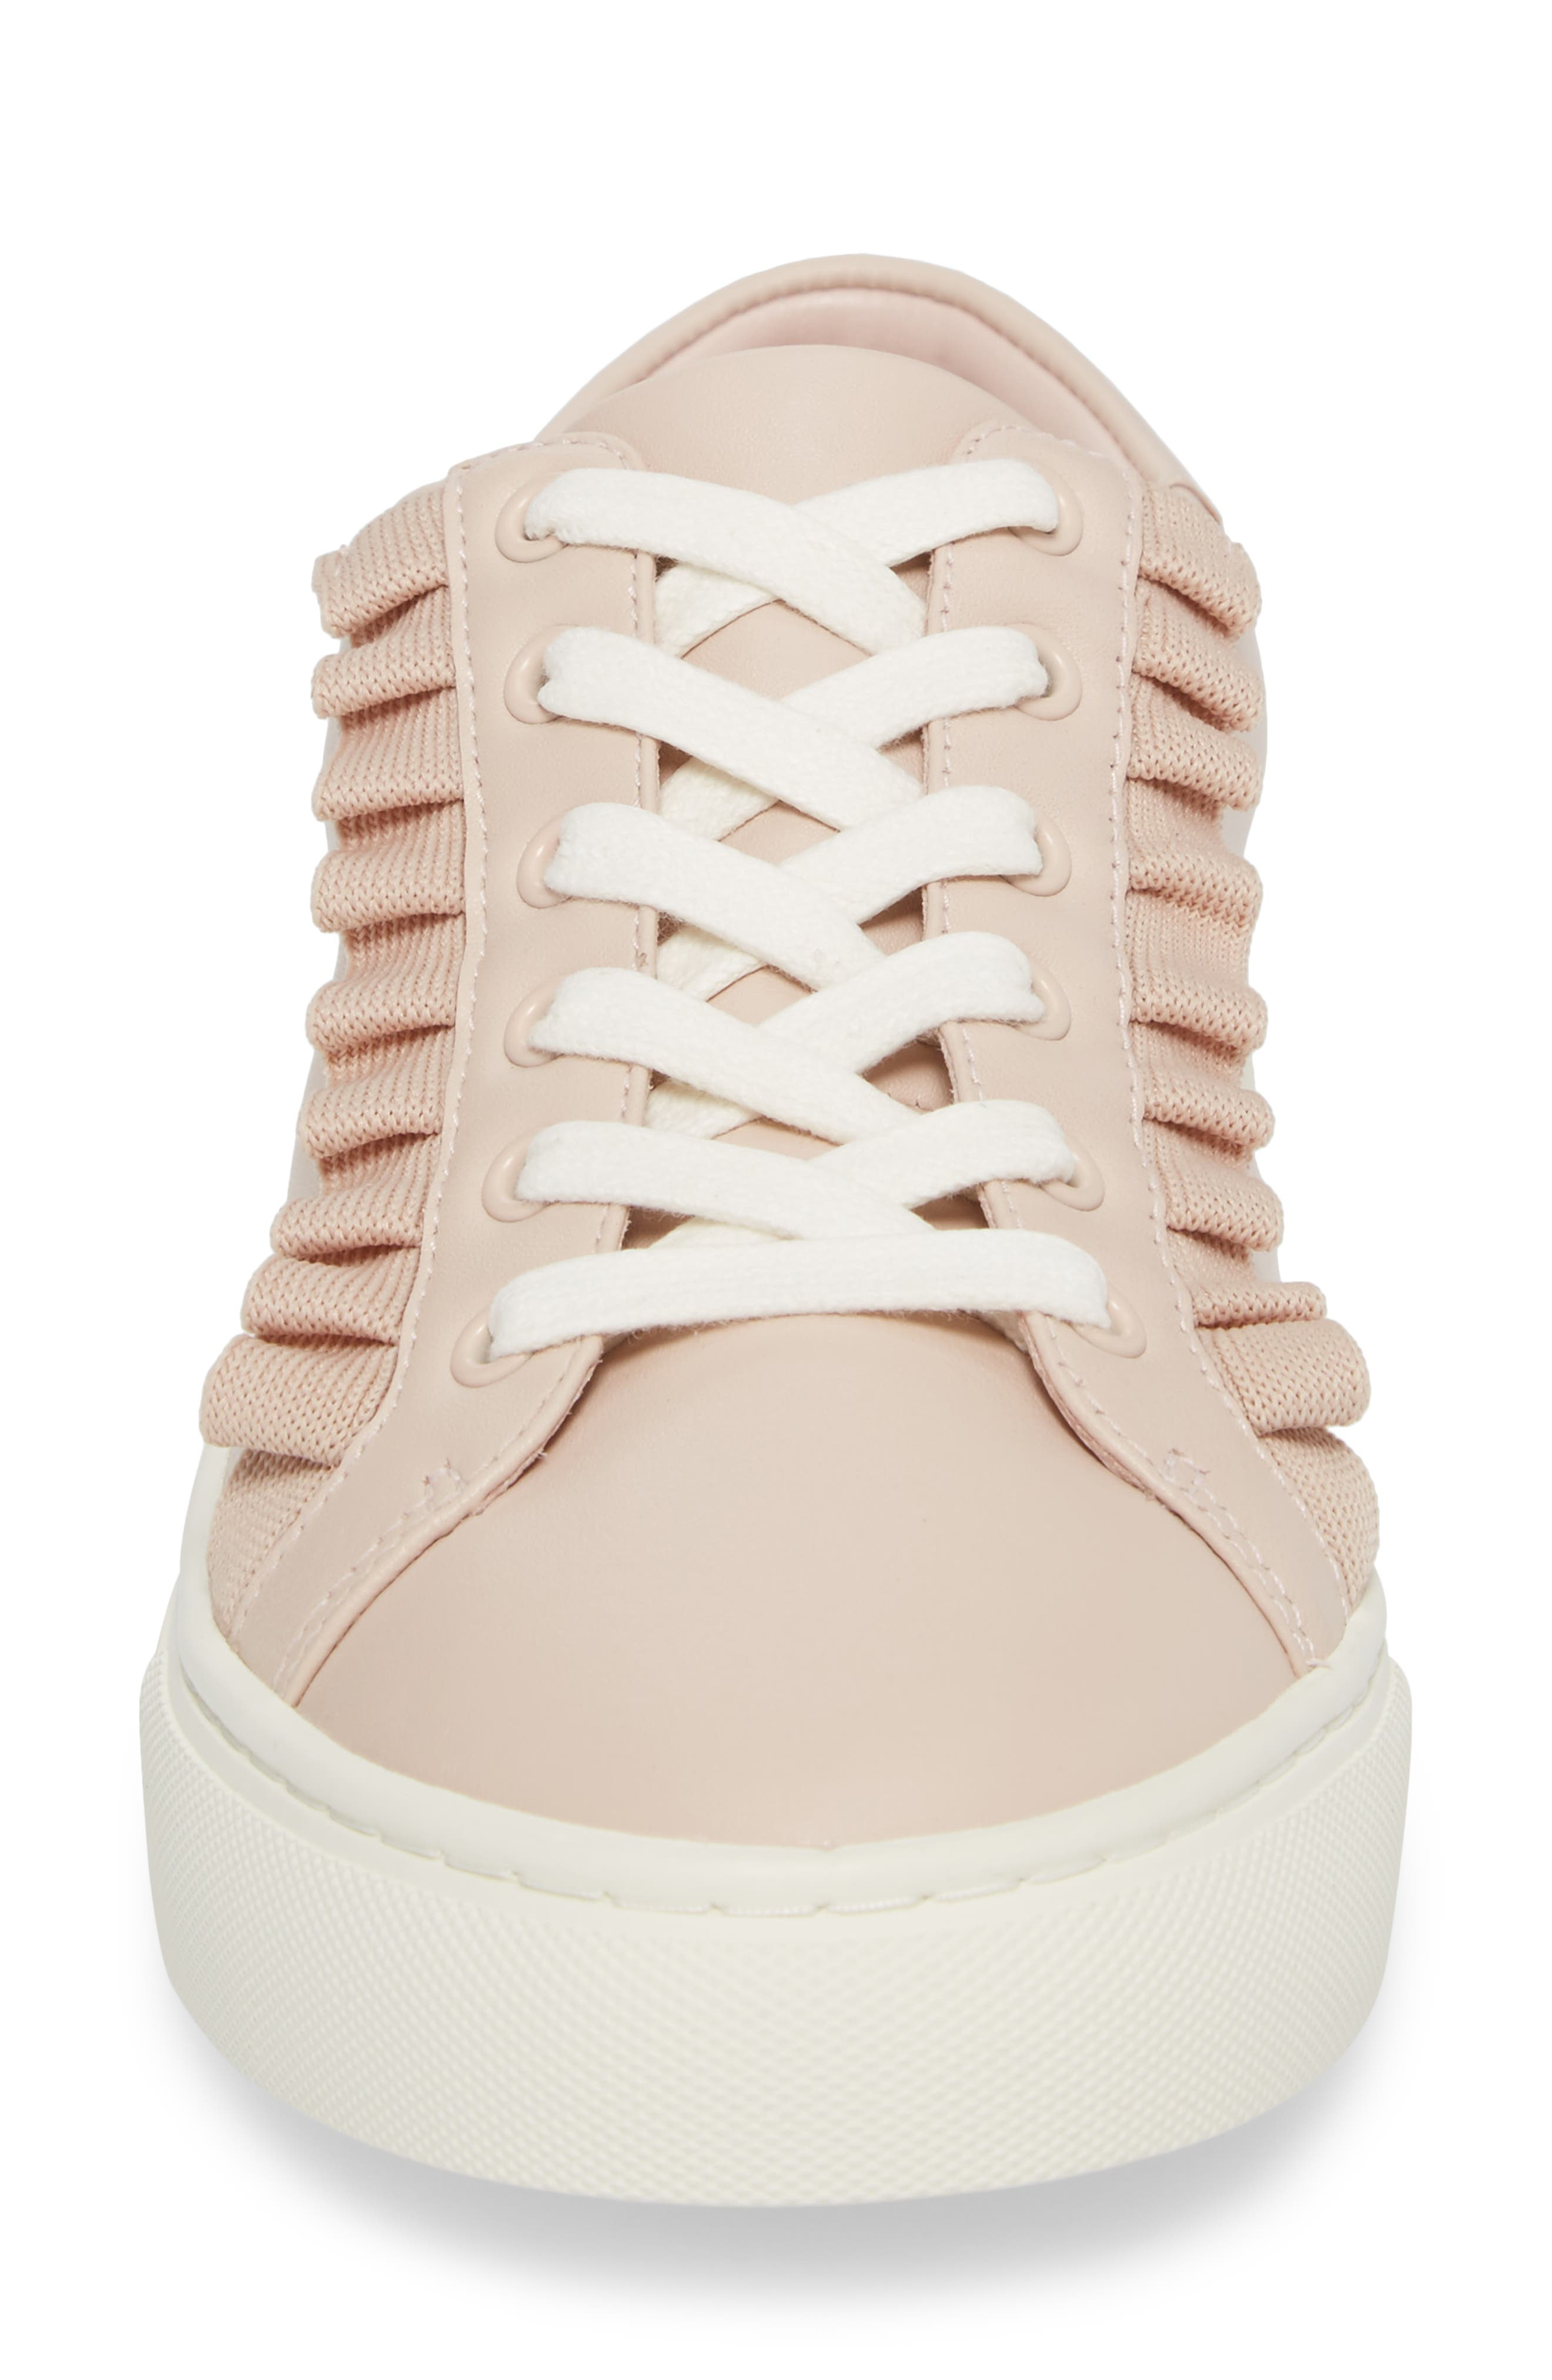 Ruffle Sneaker,                             Alternate thumbnail 4, color,                             SHELL PINK